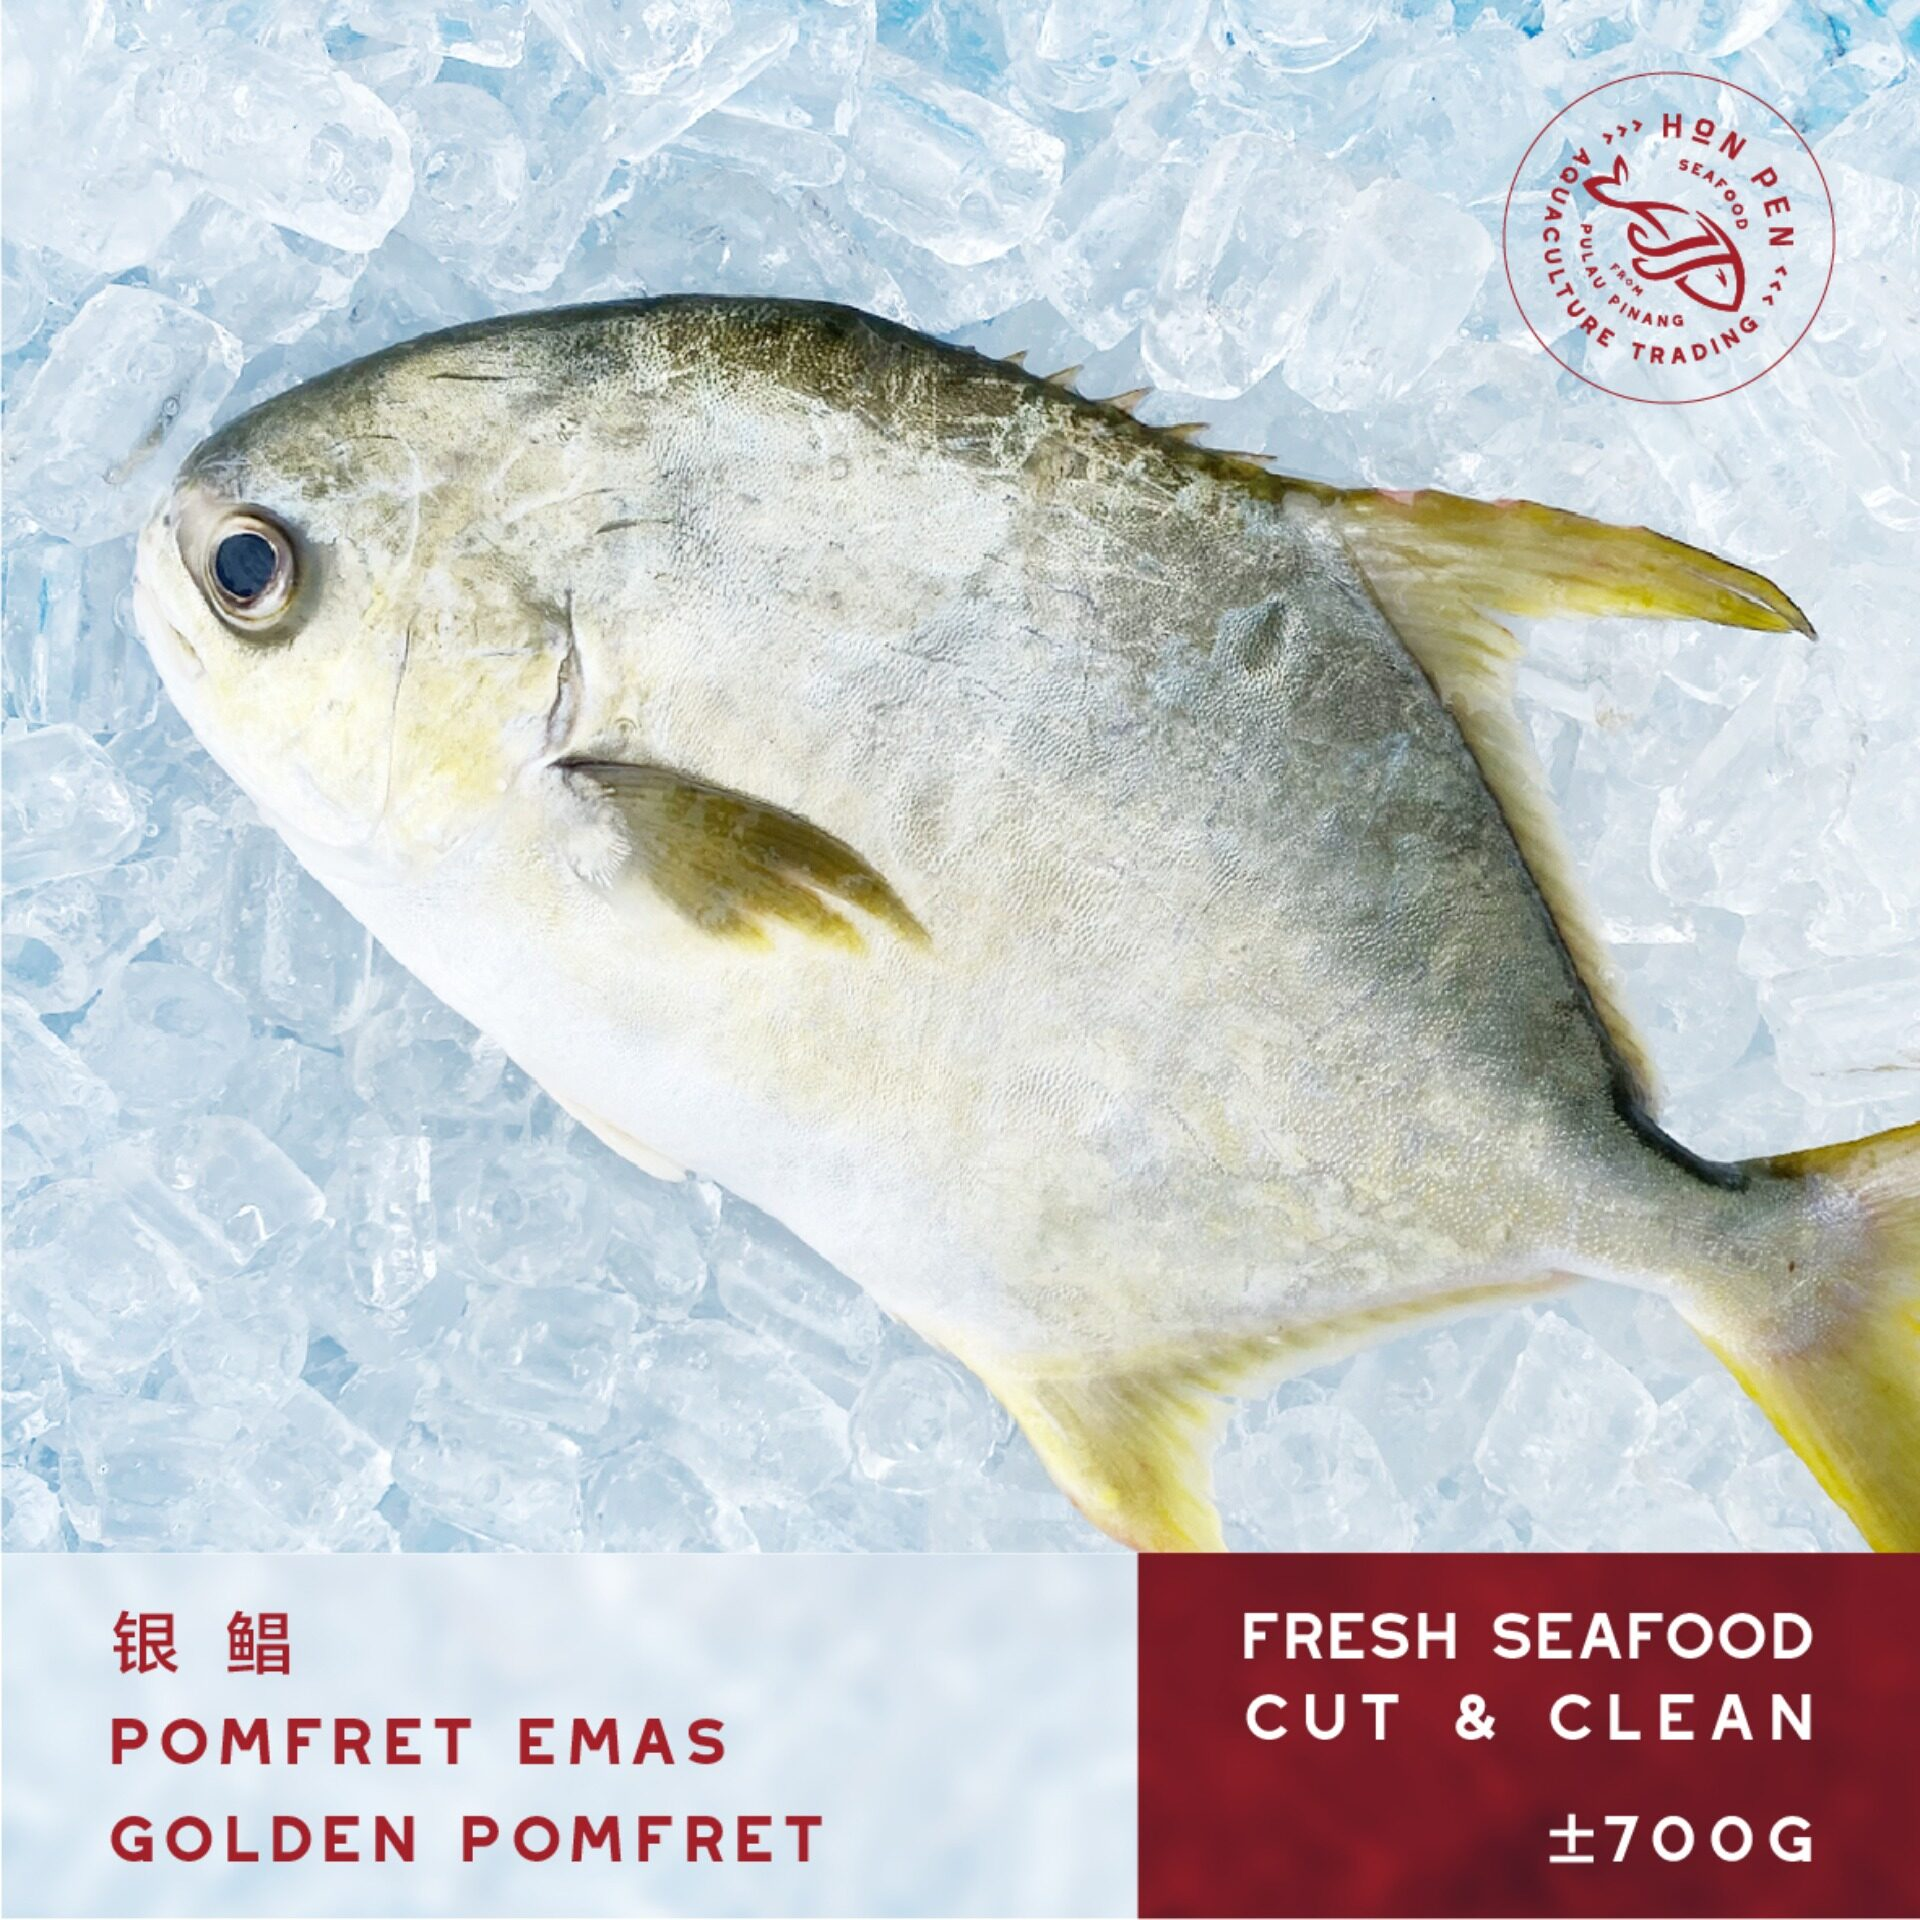 2pcs GOLDEN POMFRET 银鲳 POMFRET EMAS (Seafood) ±700g